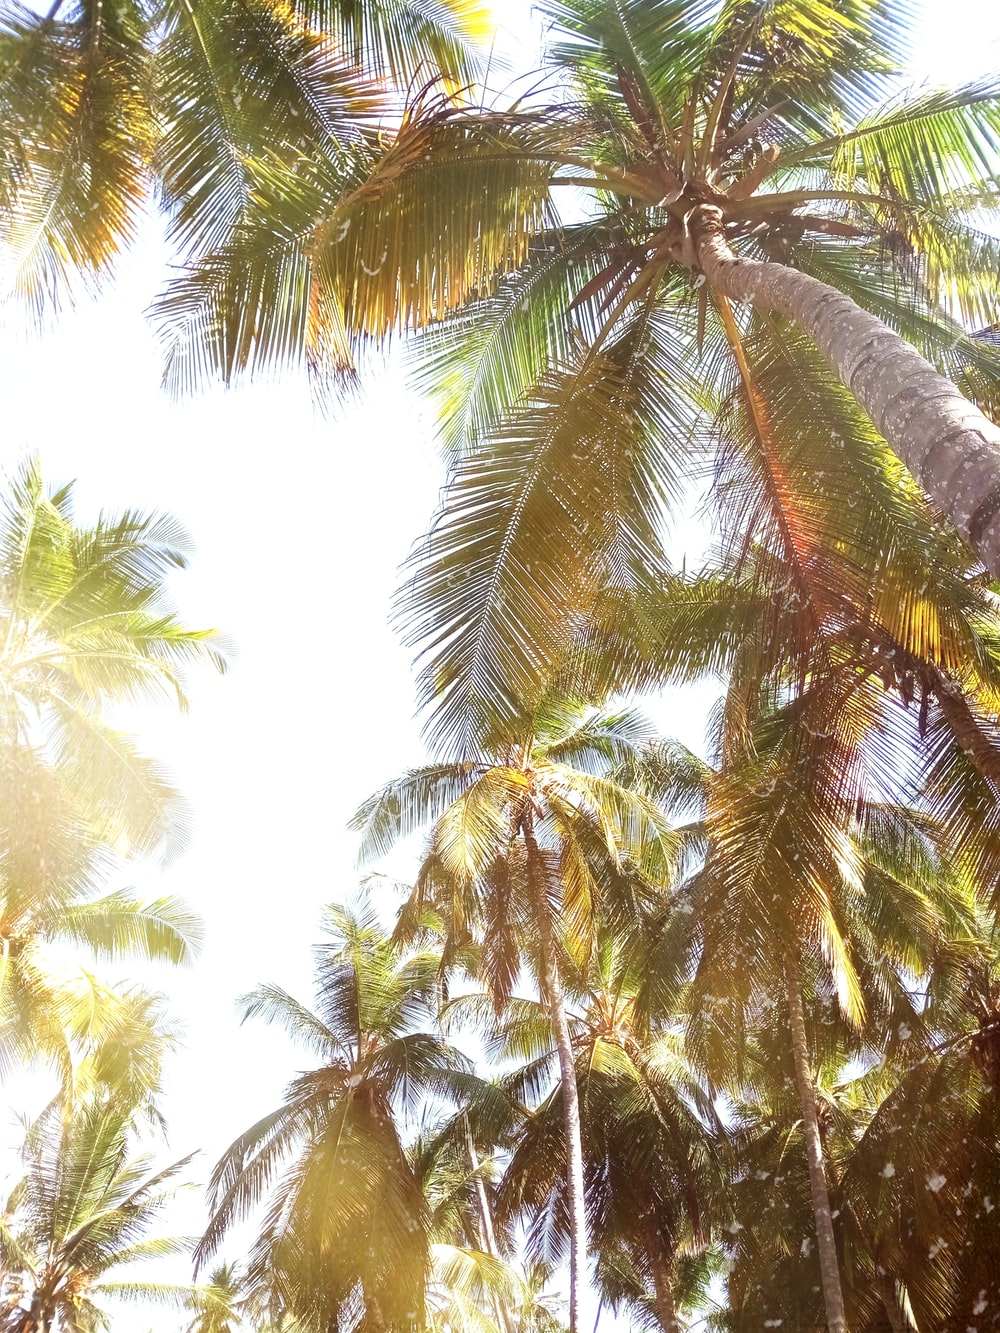 low angle of coconut trees